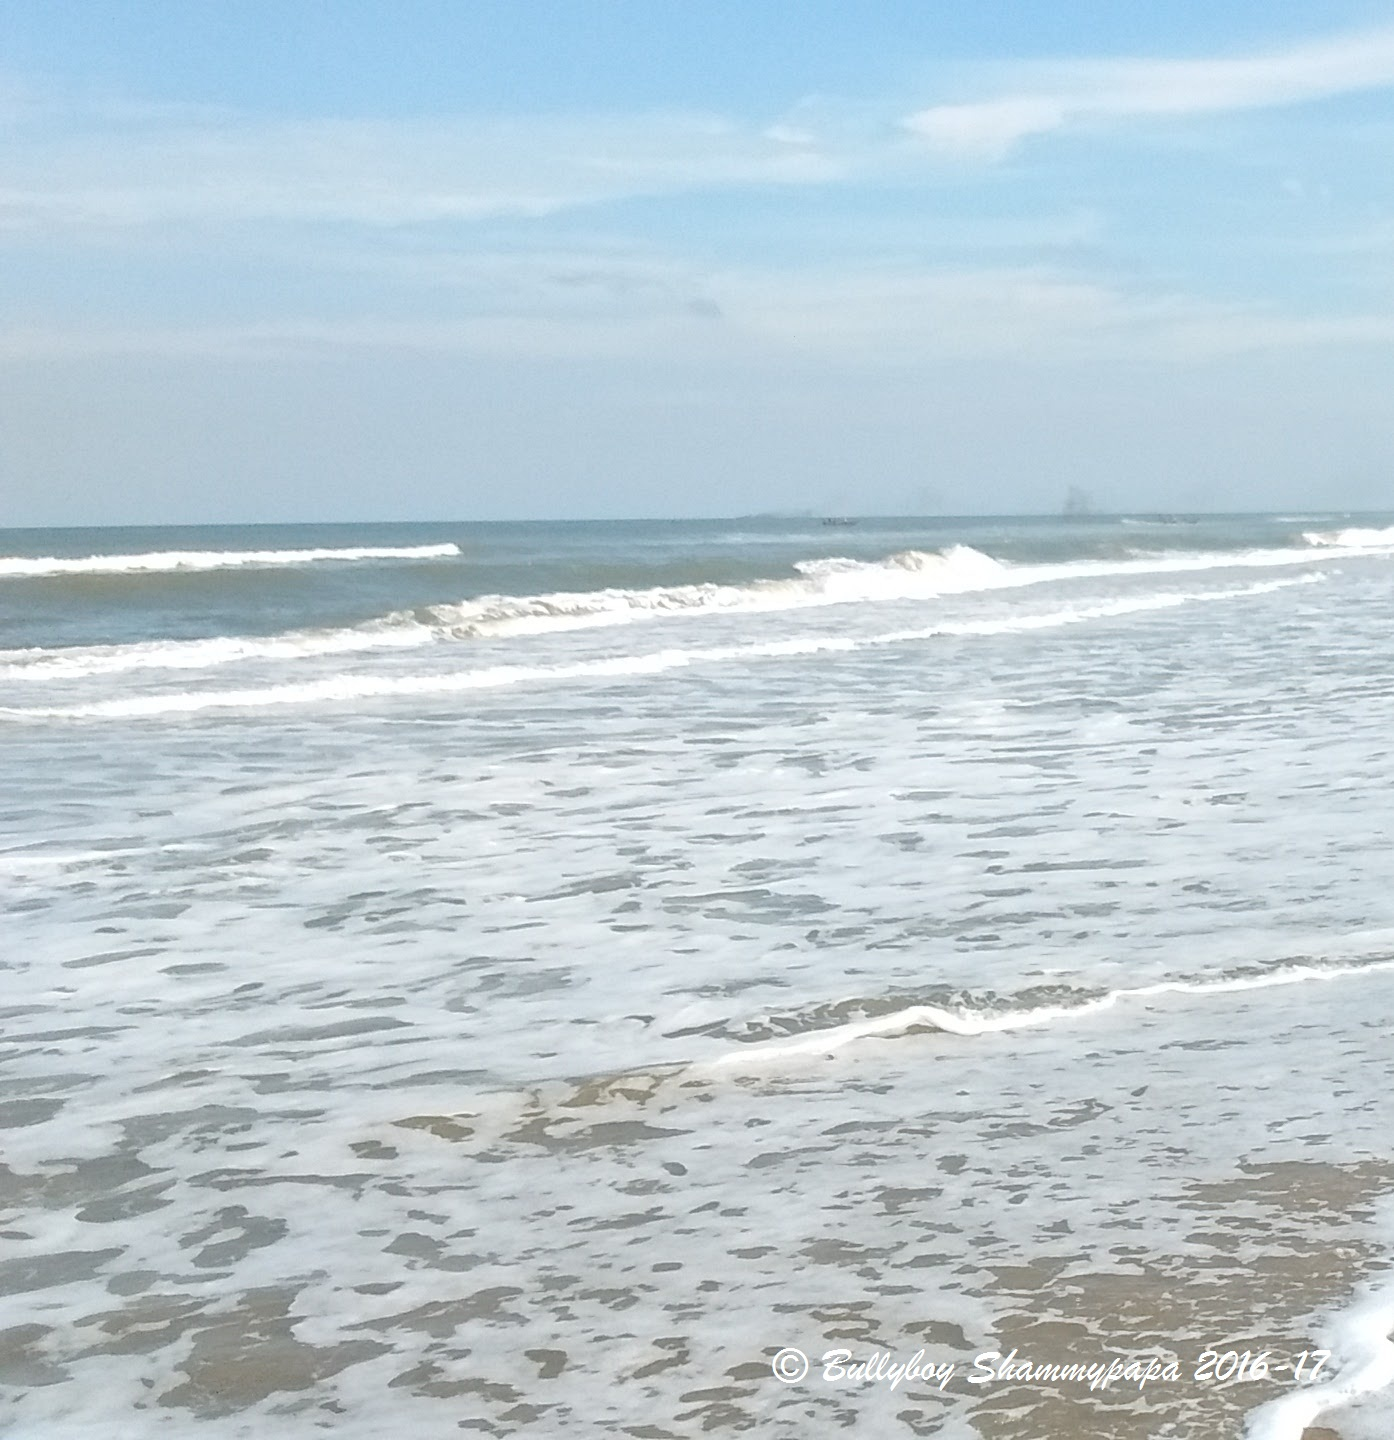 A picture of waves of the sea